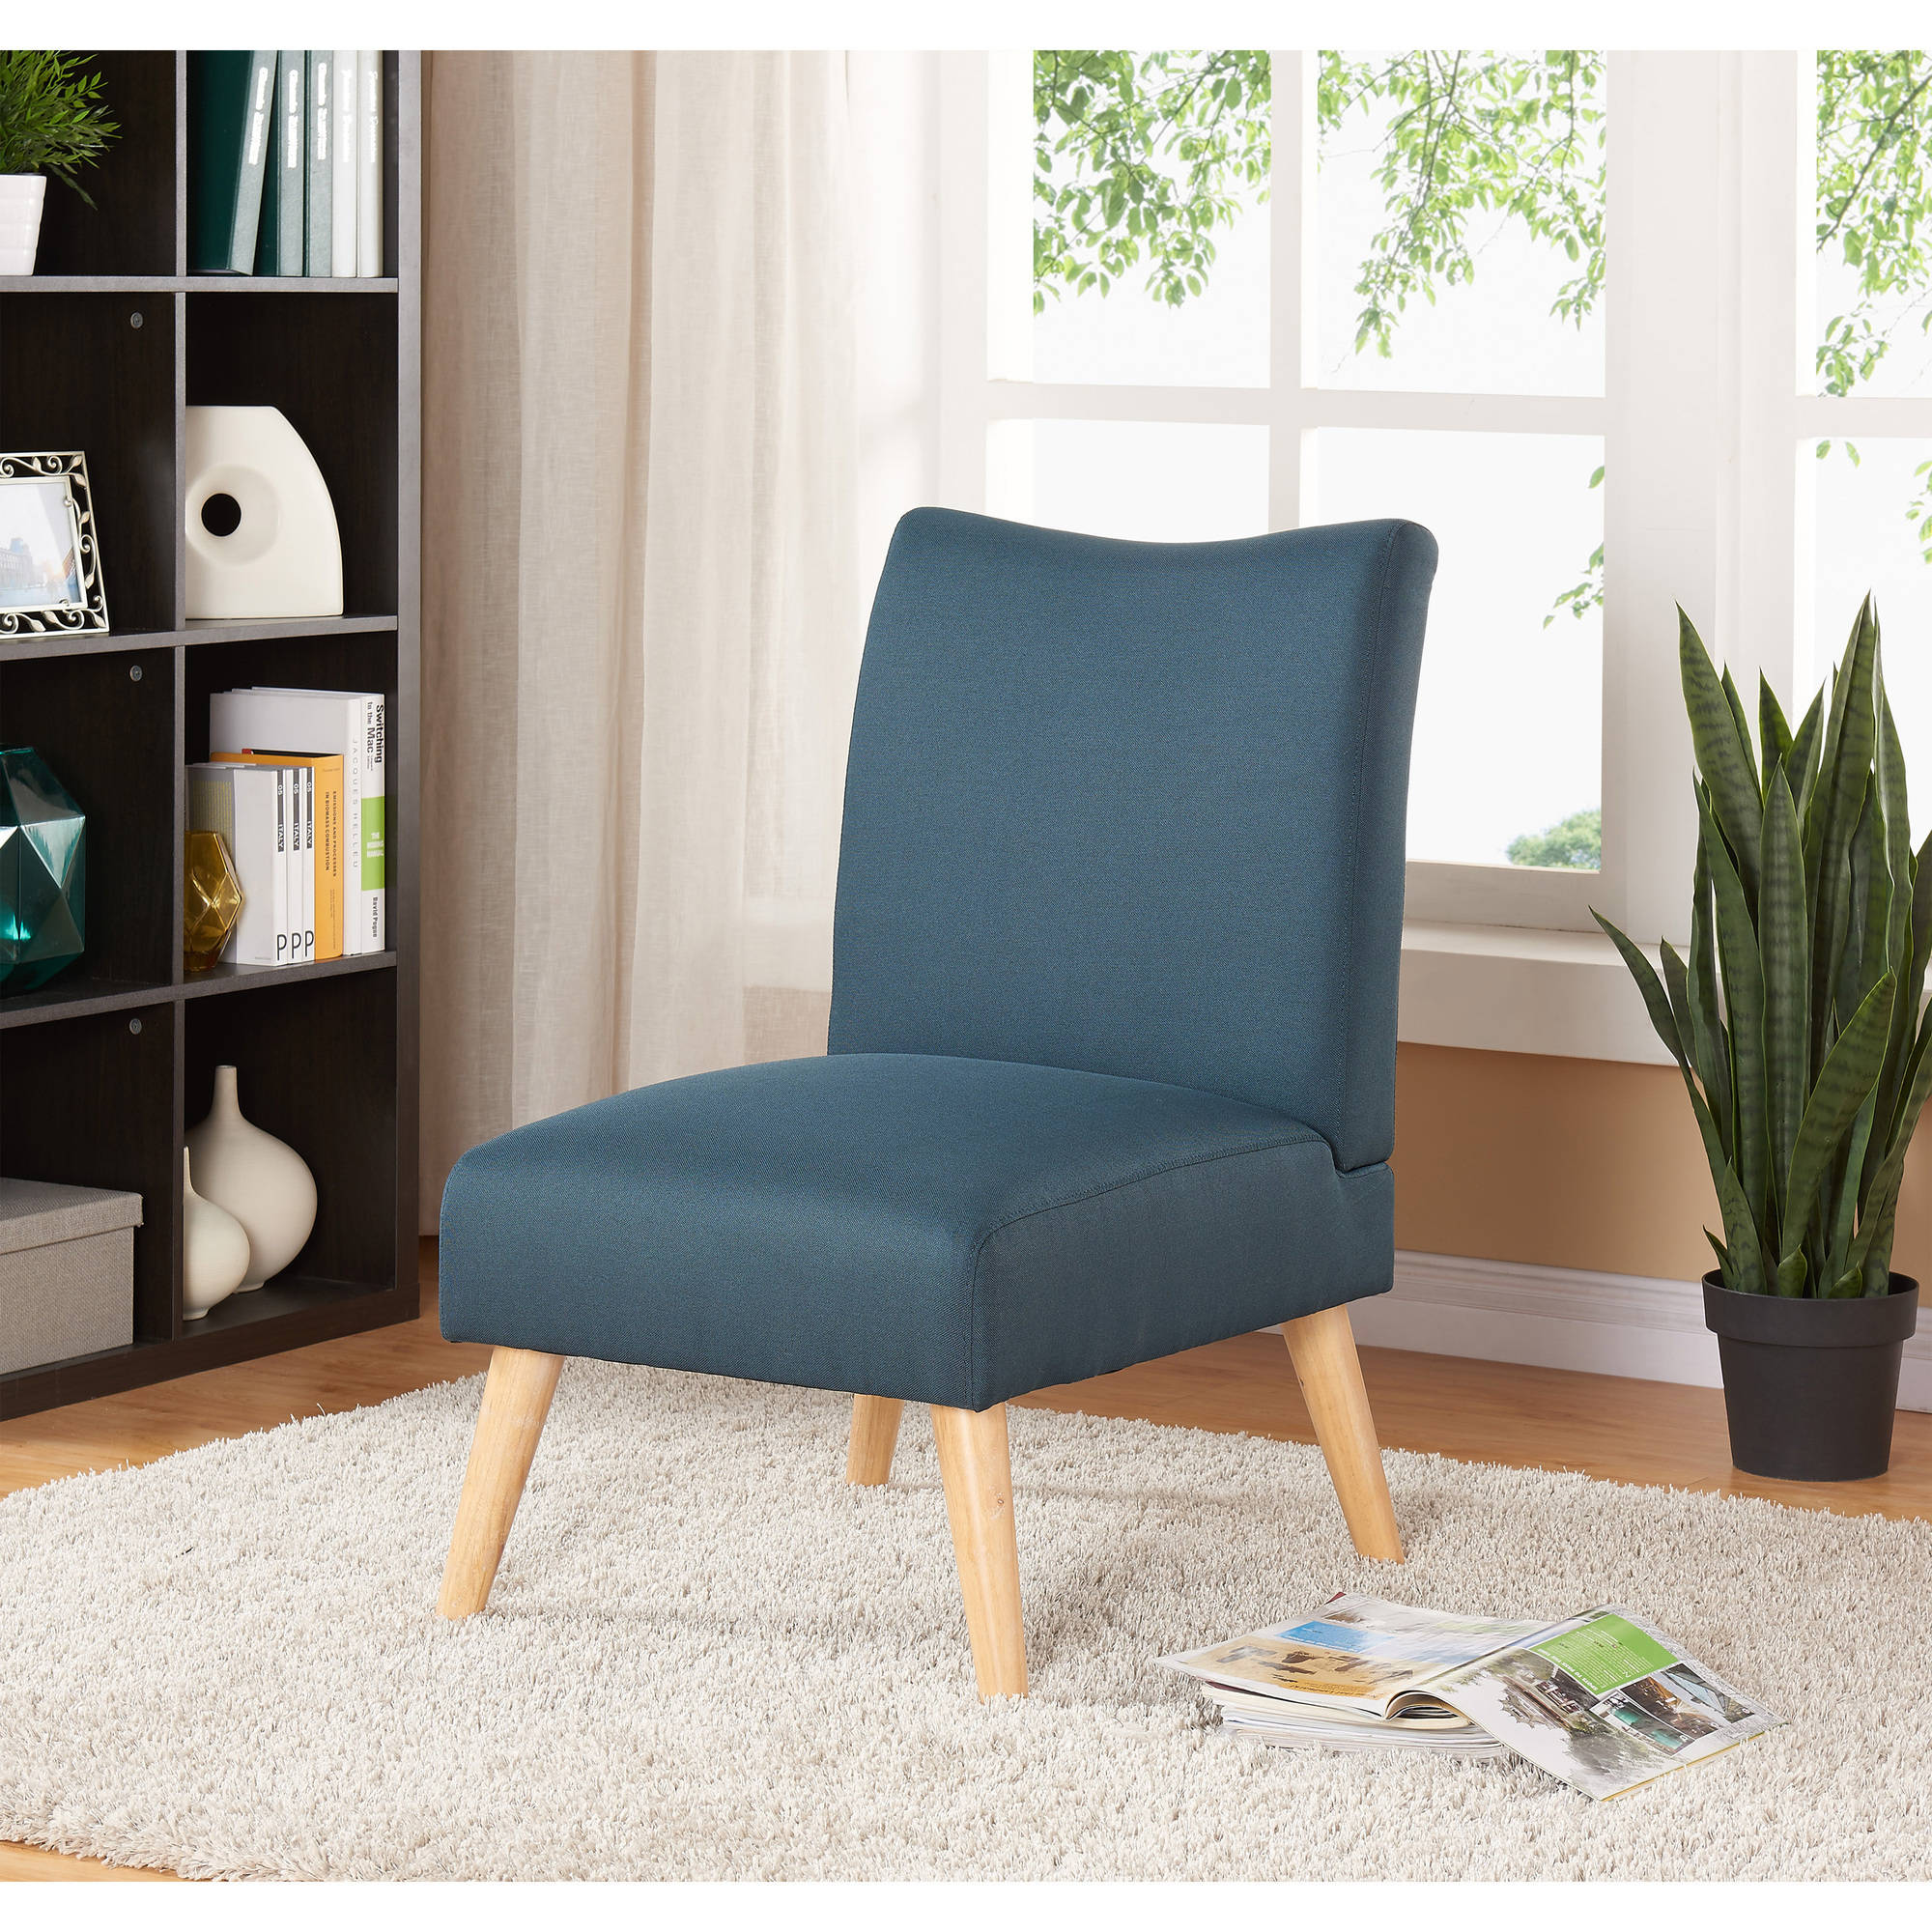 Mainstays Slipper Chair, Multiple Colors